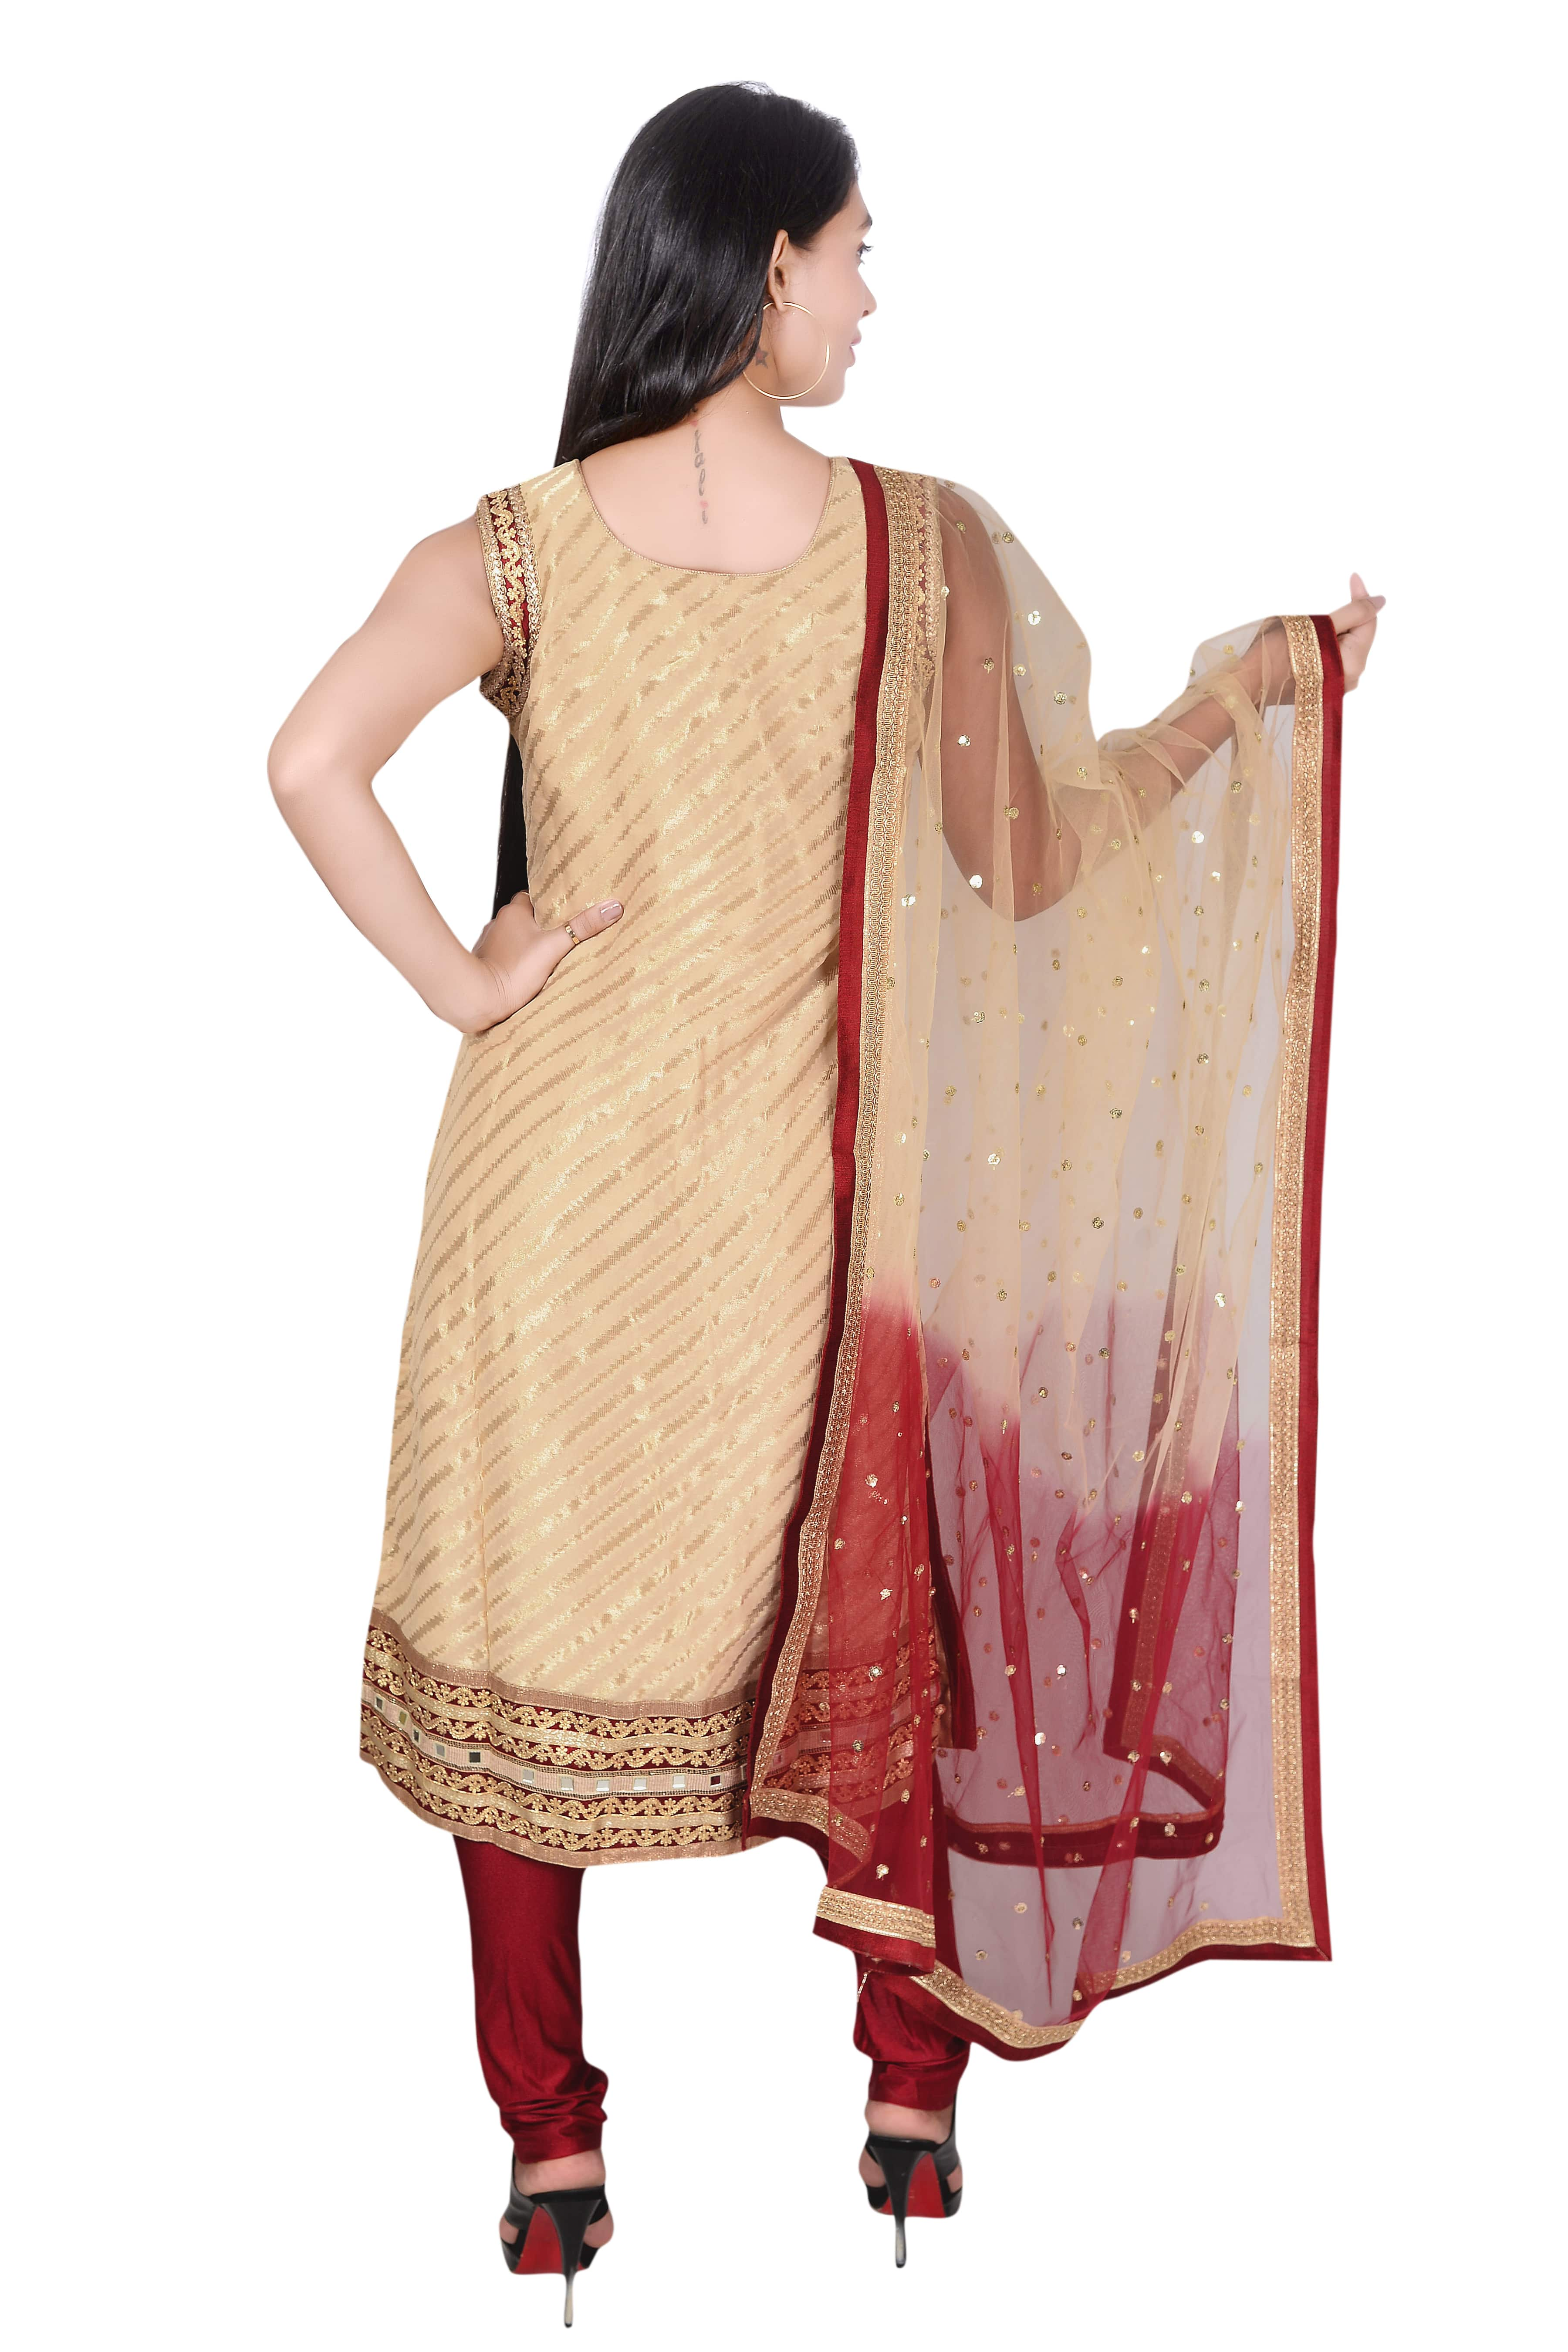 Ladies Punjabi Suits In Meerut